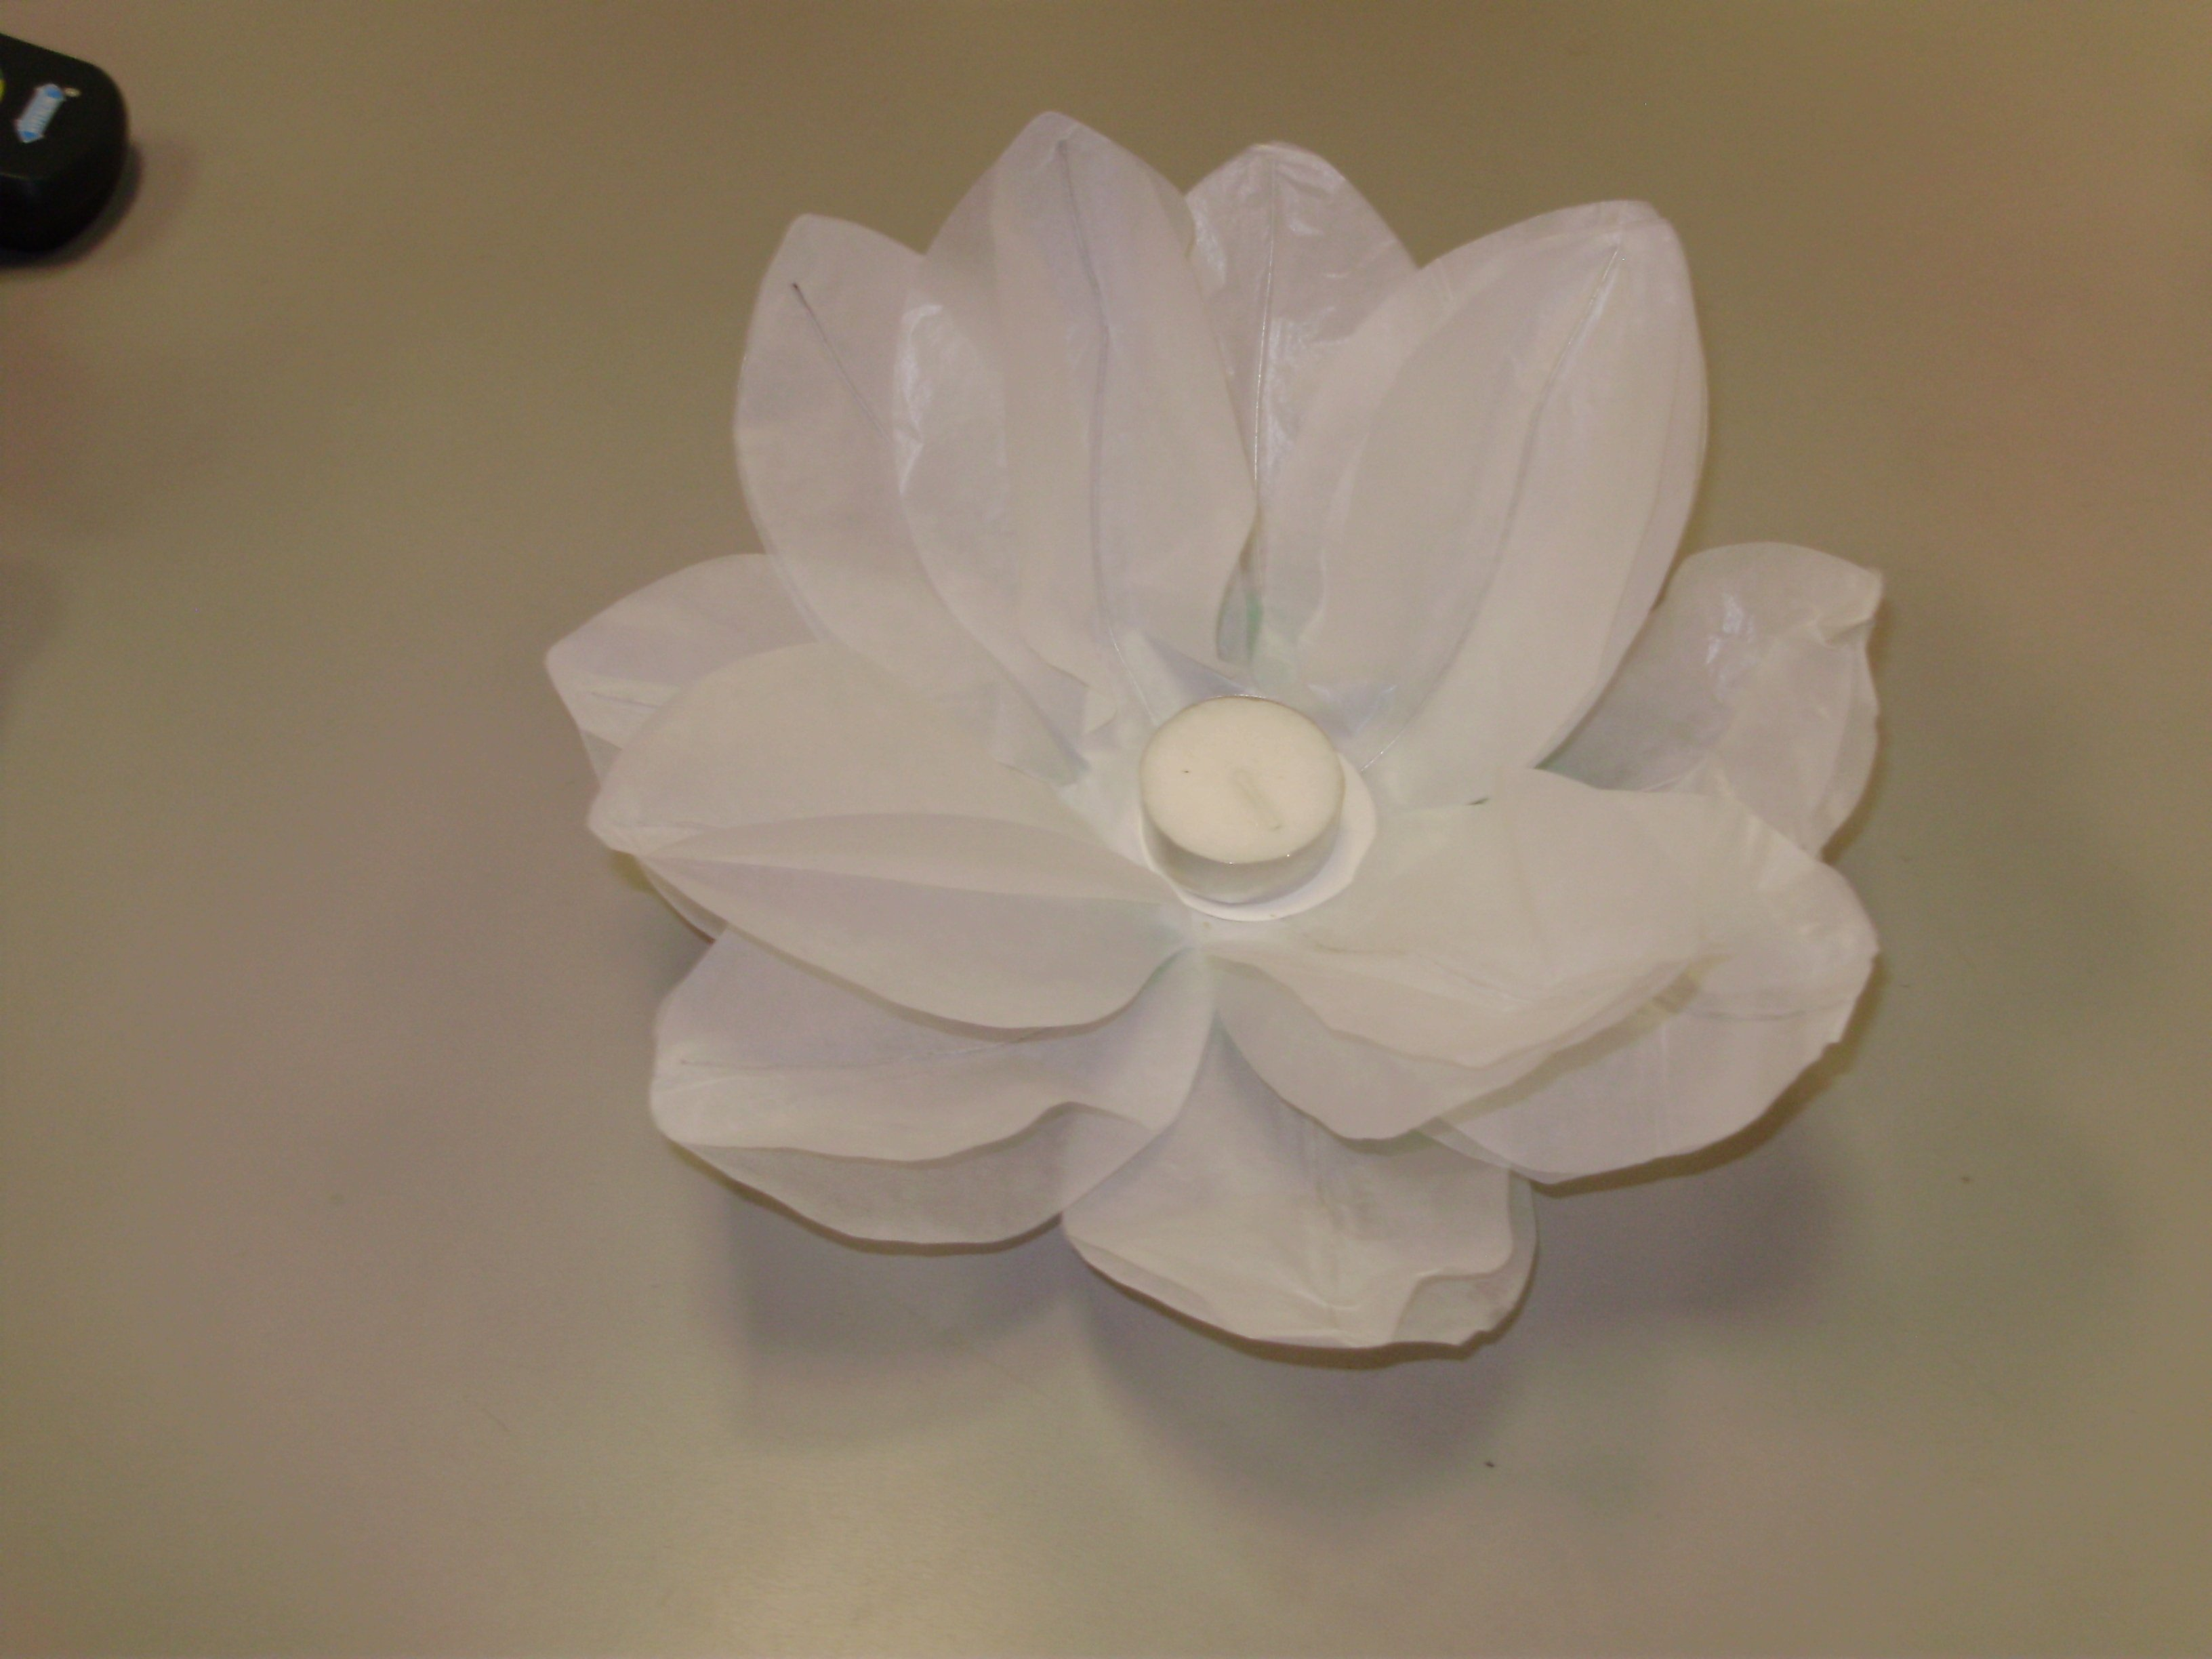 Water Lantern - White Lotus